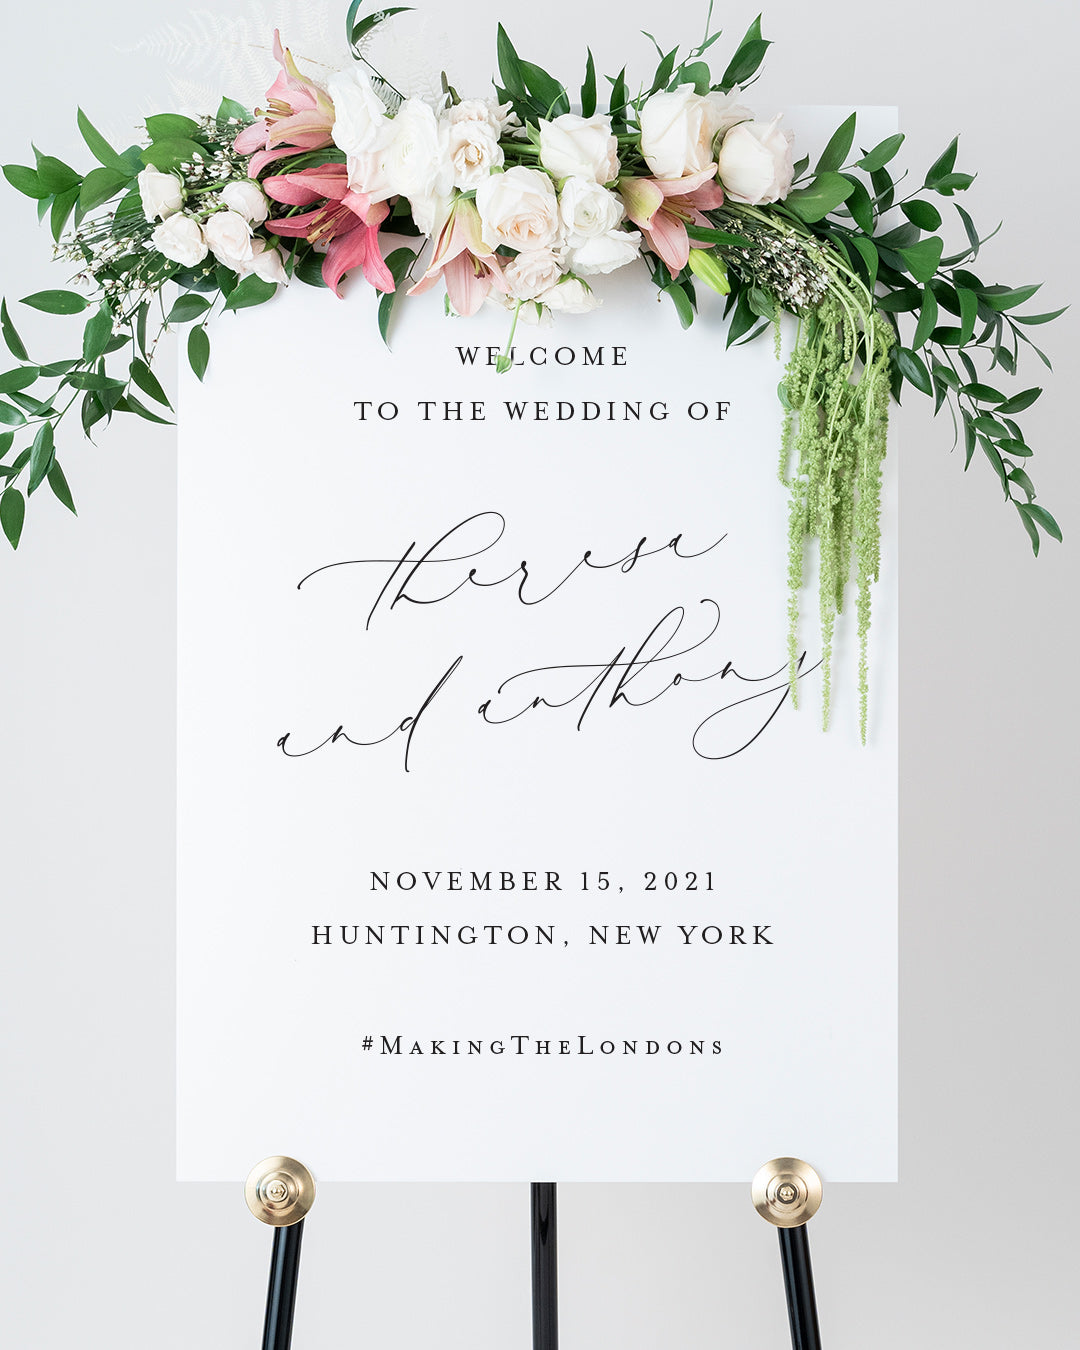 Elegant Wedding Welcome Sign For Ceremony | The Theresa